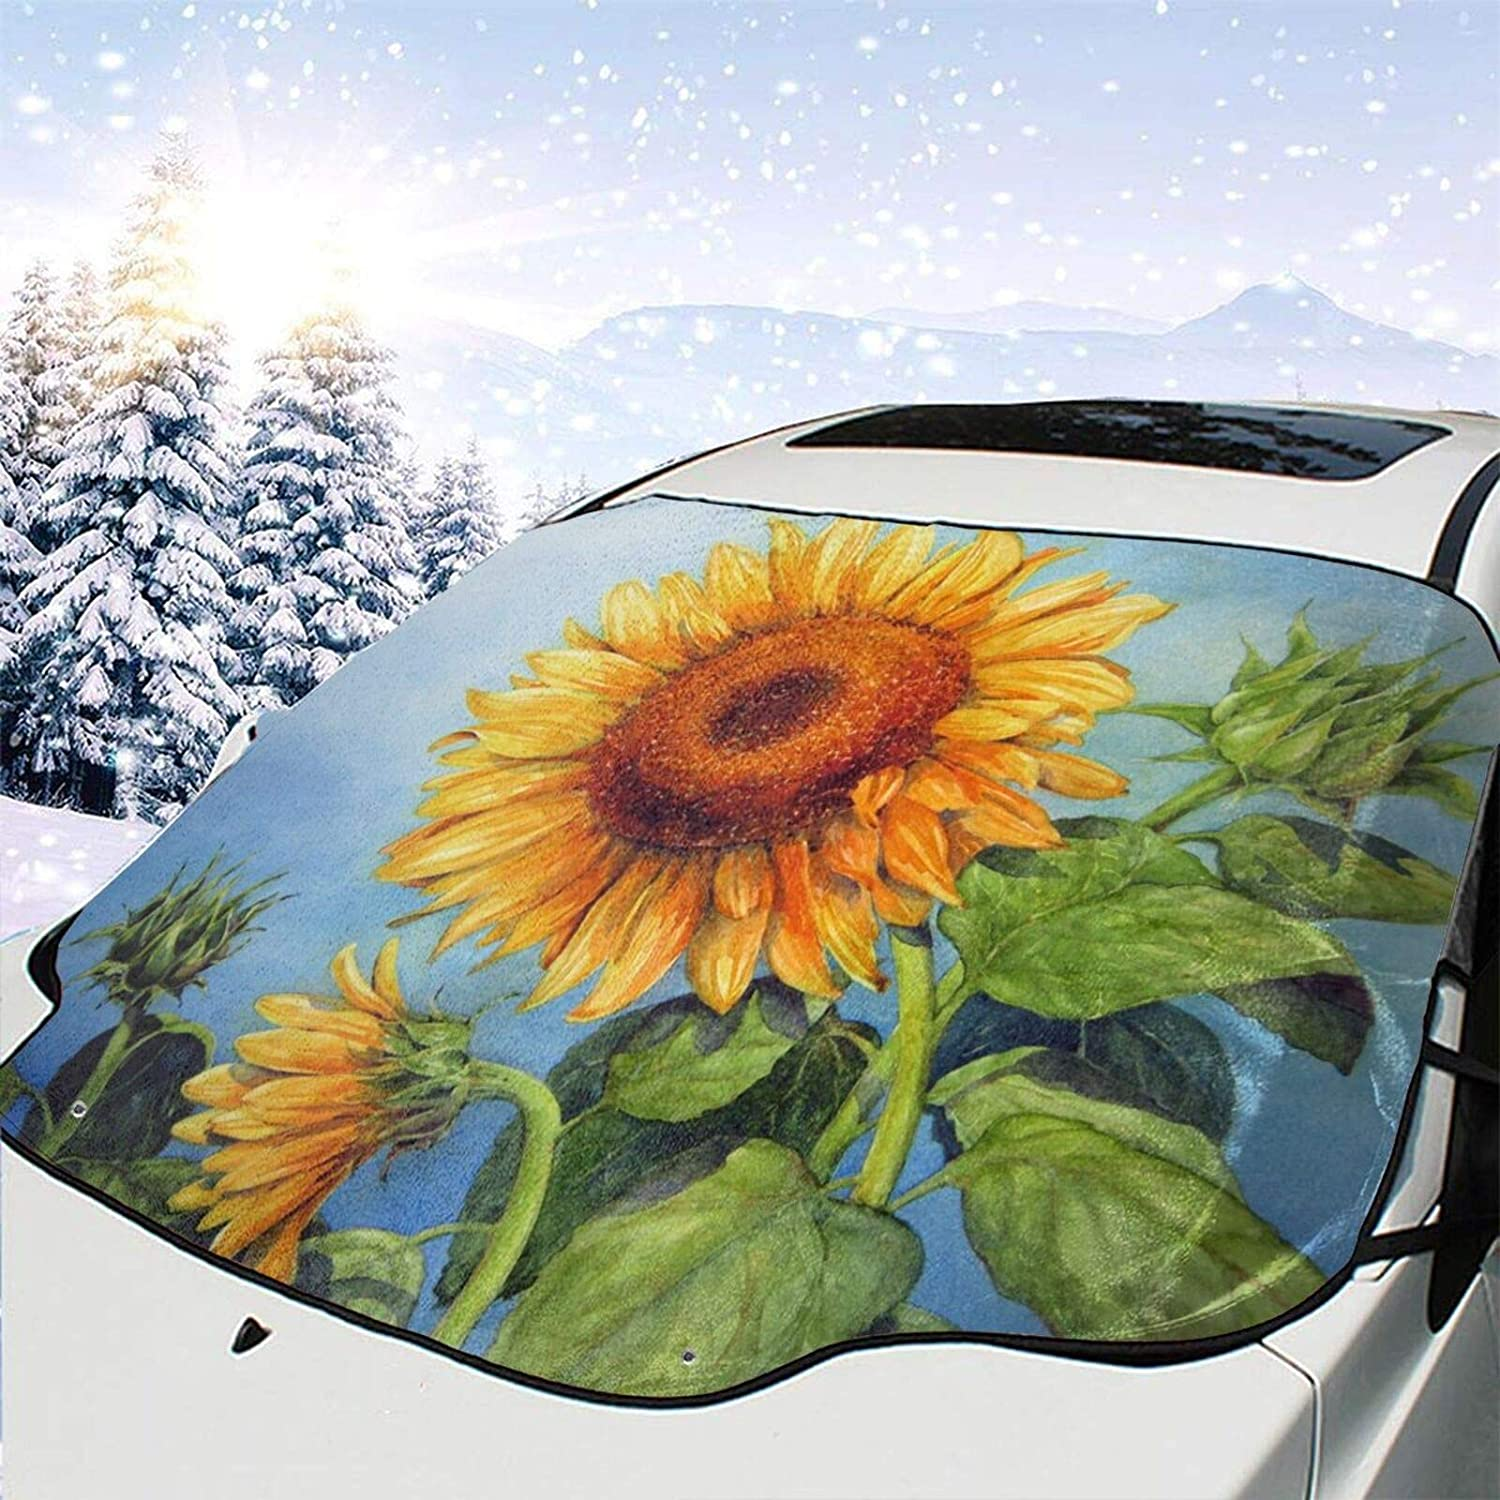 Large discharge All items in the store sale Alouply Car Windshield Snow Sno Sunflowers Cover Ice